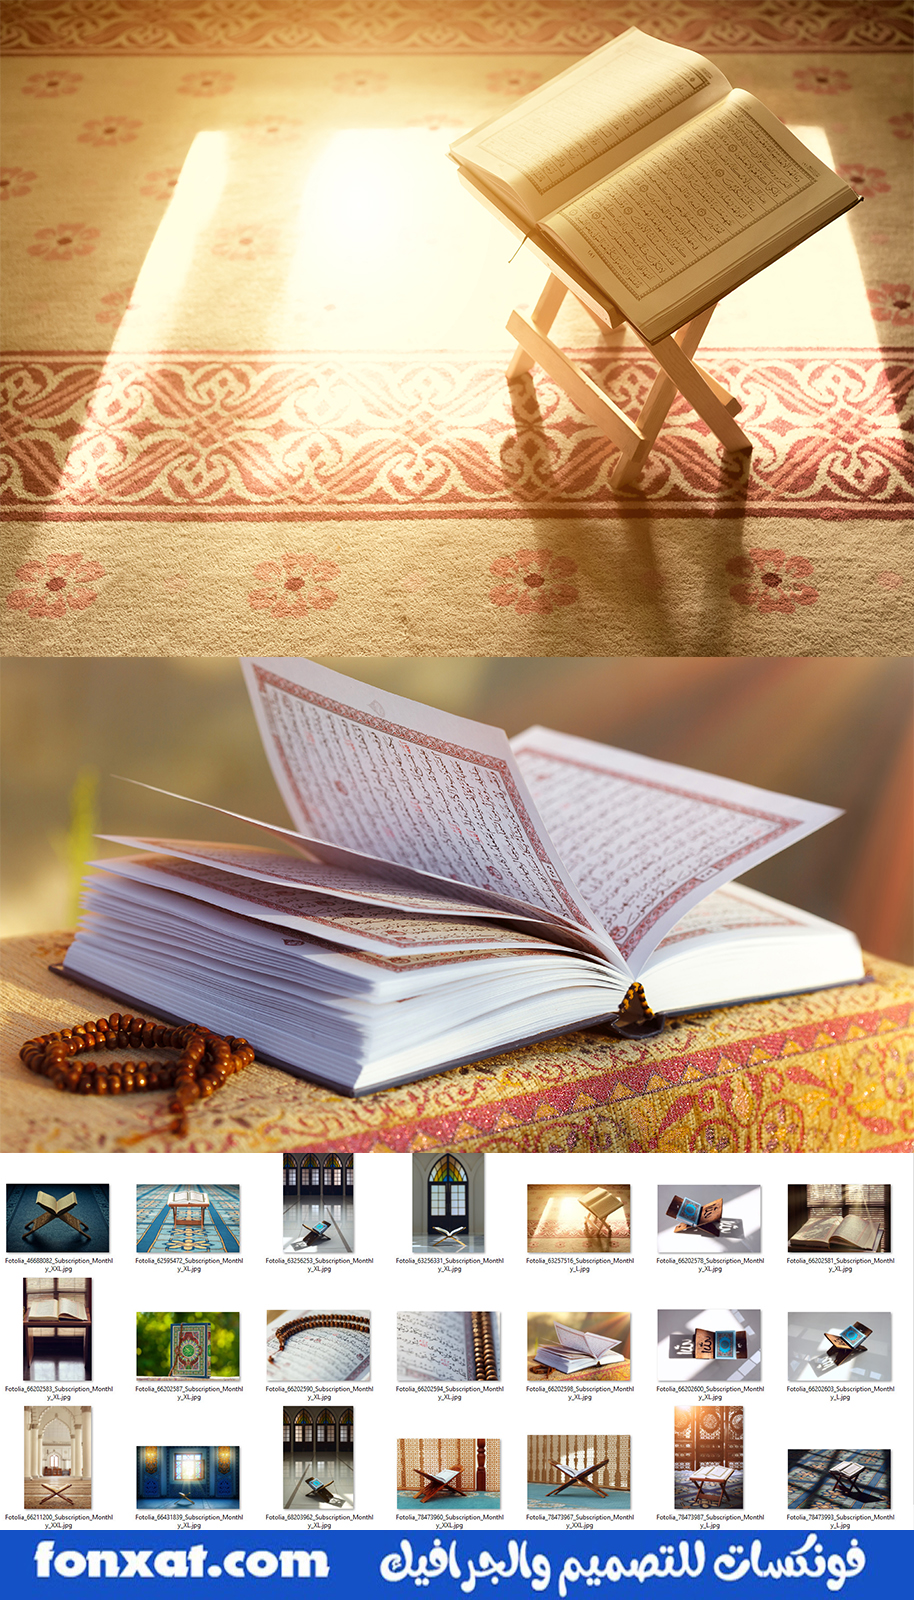 Islamic religious pictures of the highest quality, especially for religious occasions, Ramadan Hajj